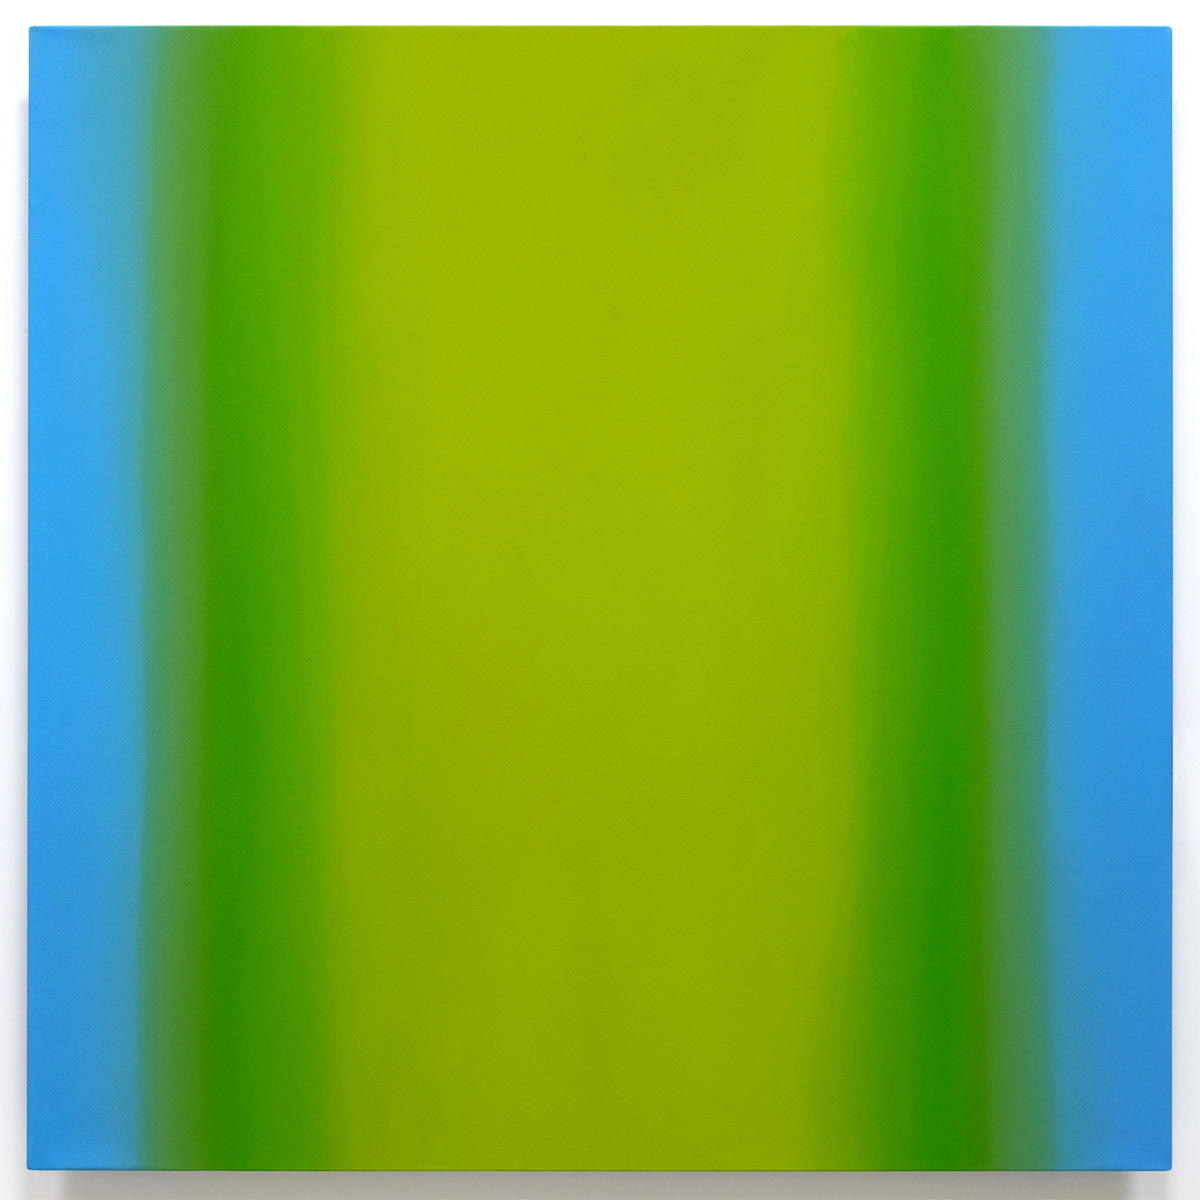 Red Green 2-S6060 (Yellow Green), Interplay Series, 2013, oil on canvas on custom beveled stretcher, 60 x 60 in. (153 x 153 cm.)